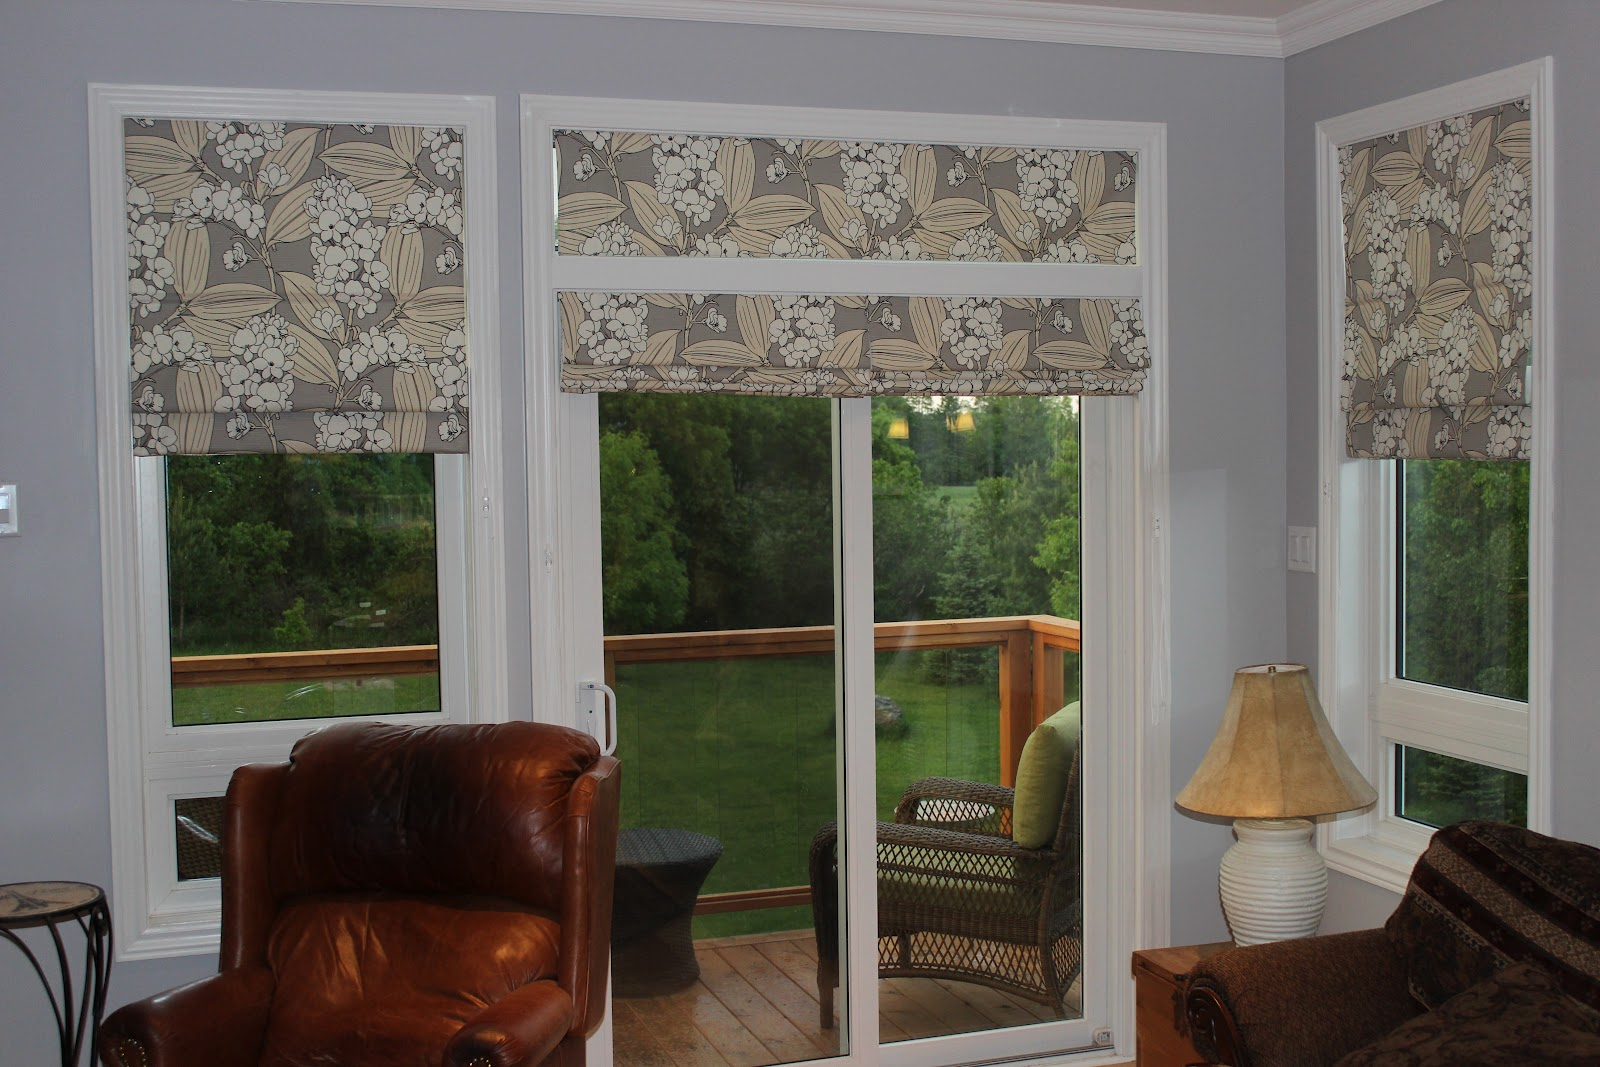 Roman Shades In A Patio Door